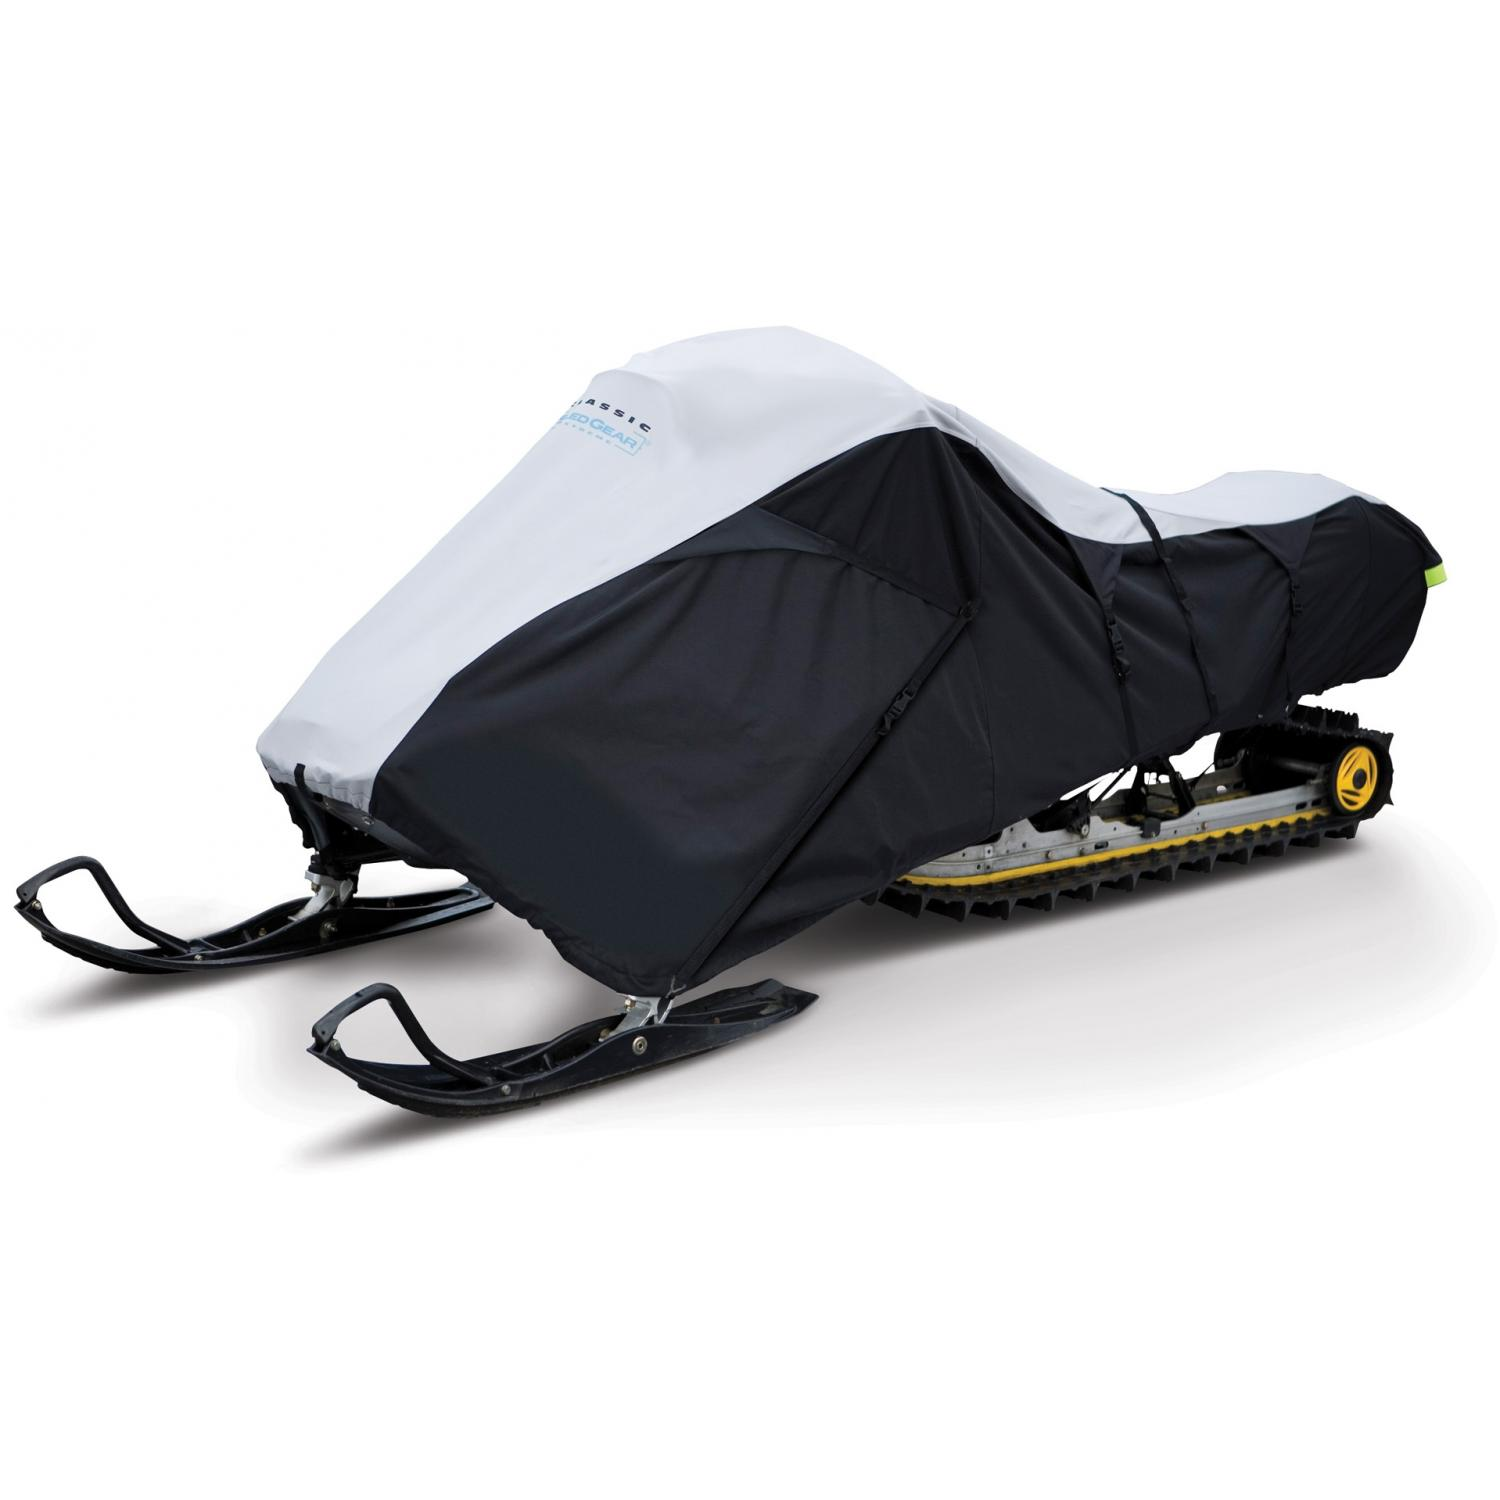 Classic Accessories SledGear Deluxe Snowmobile Travel Cover - Black/Grey - Large